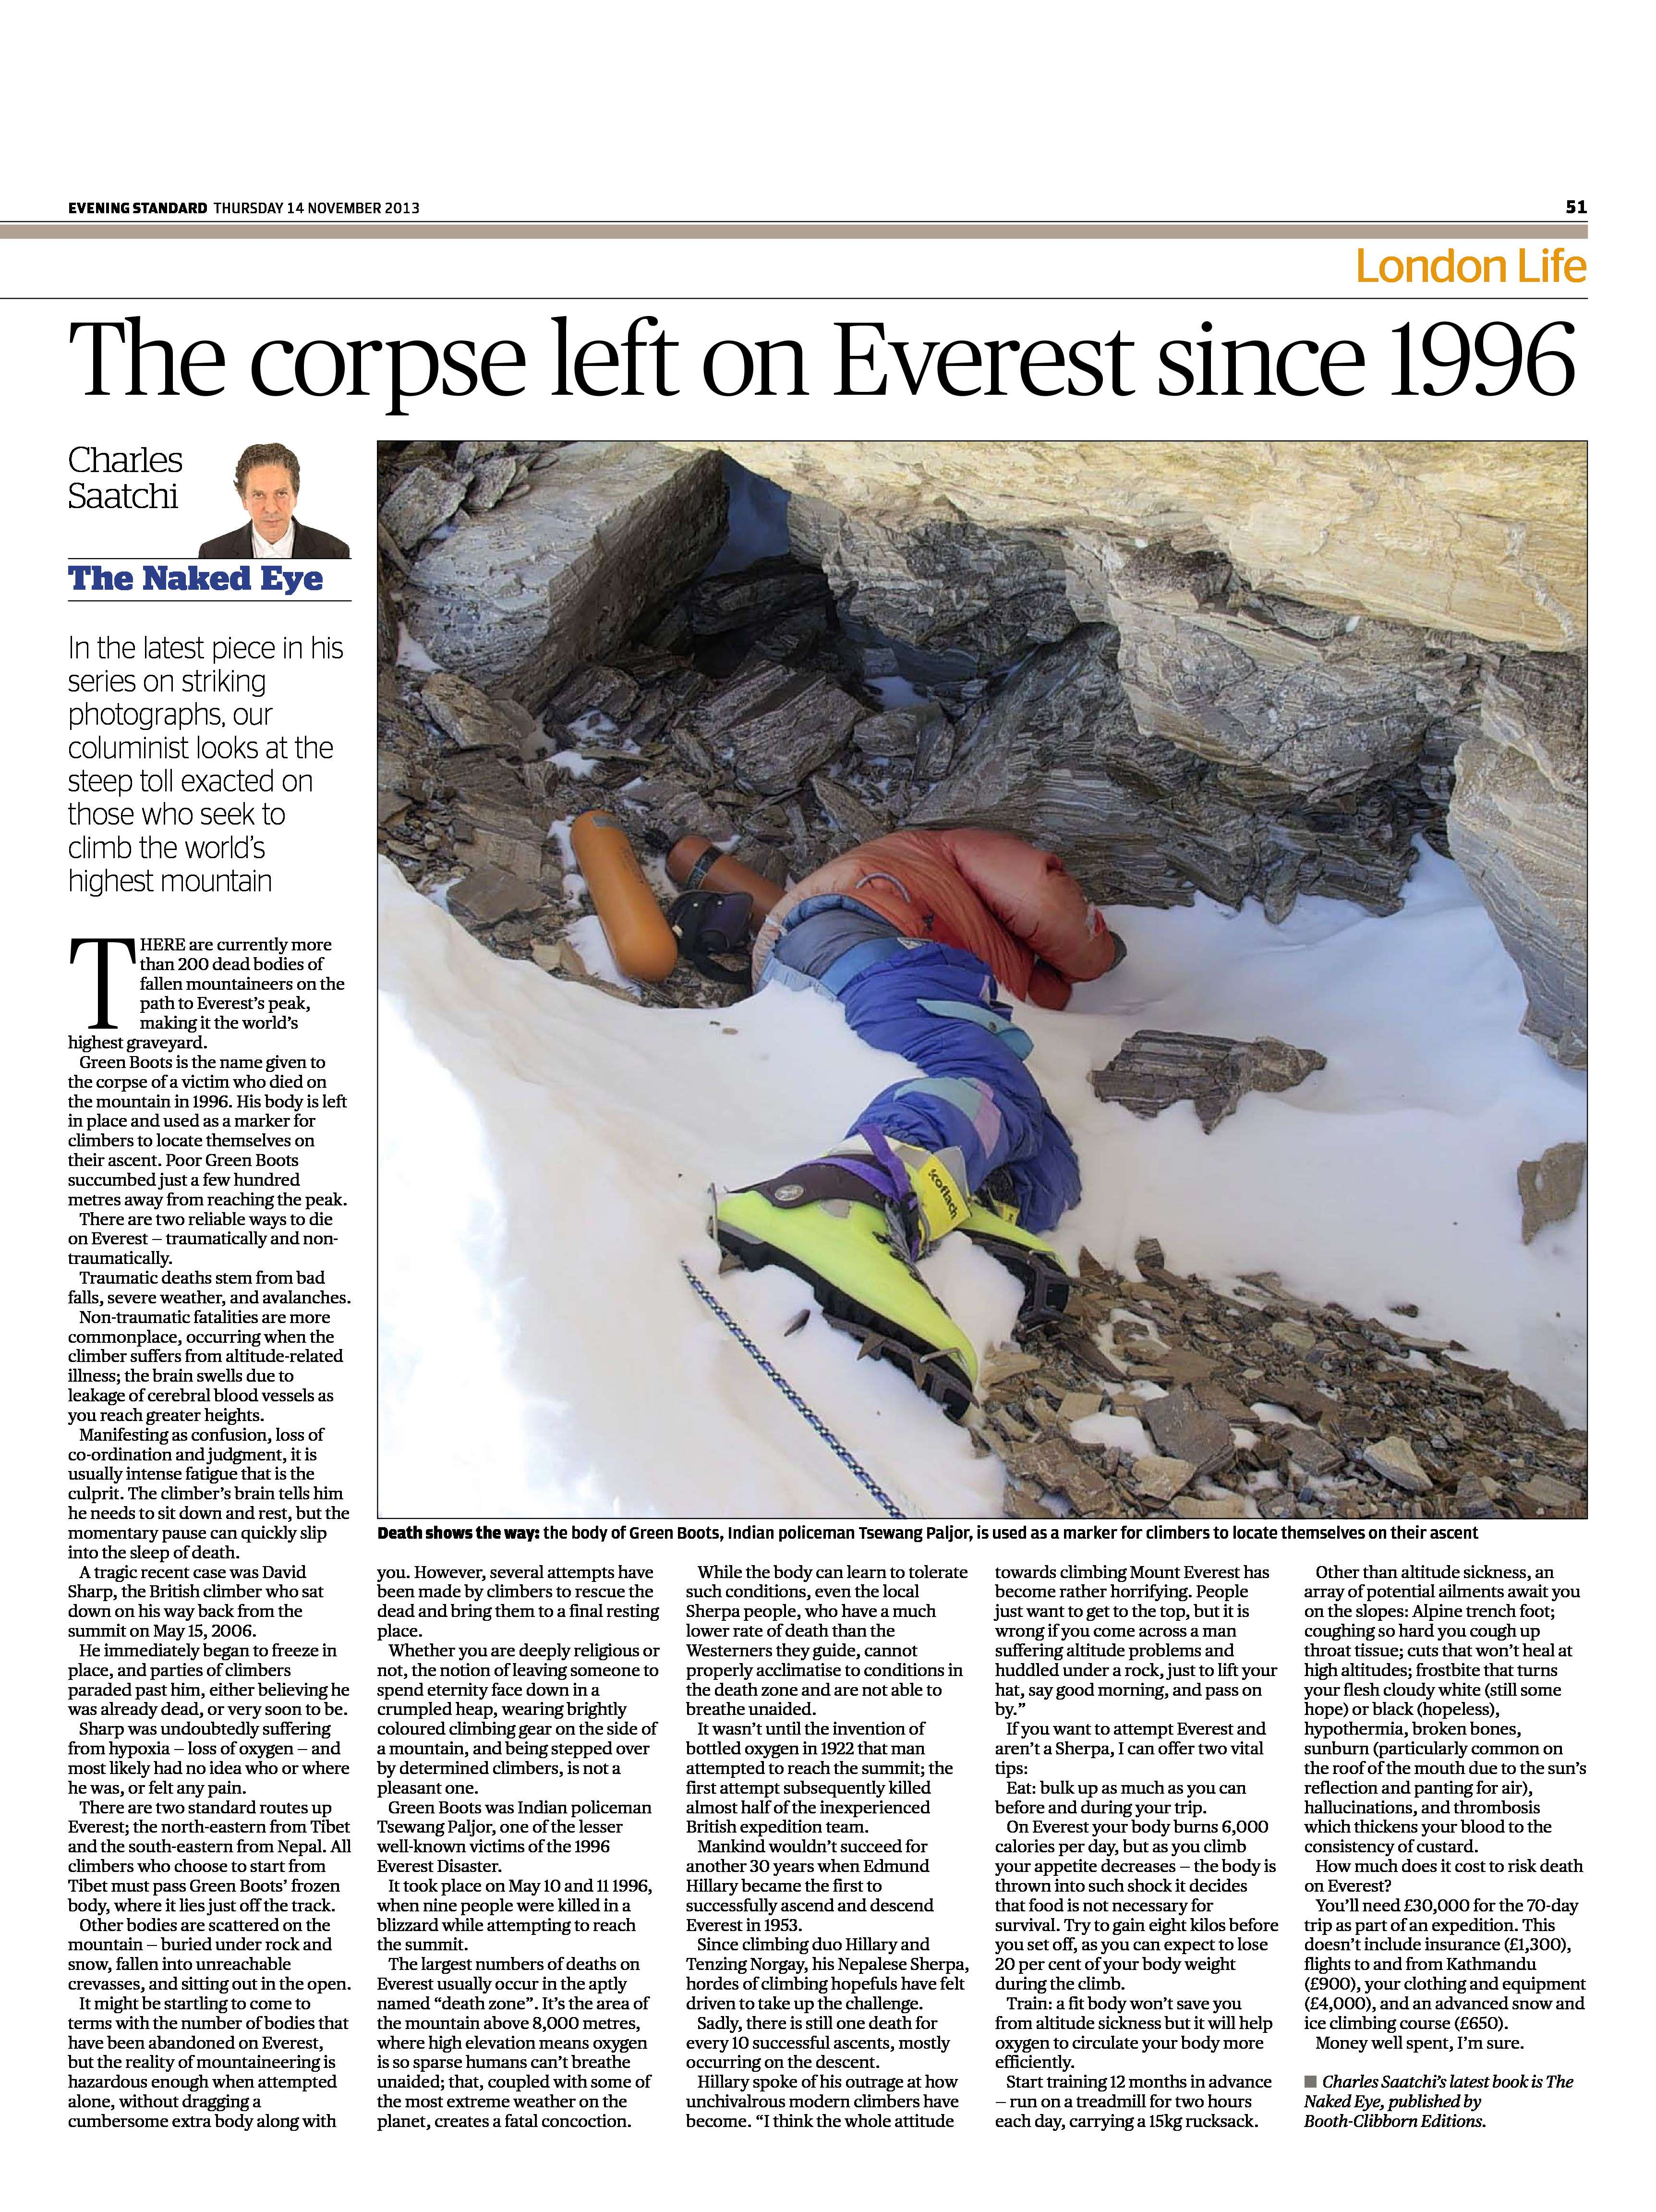 The corpse left on Everest